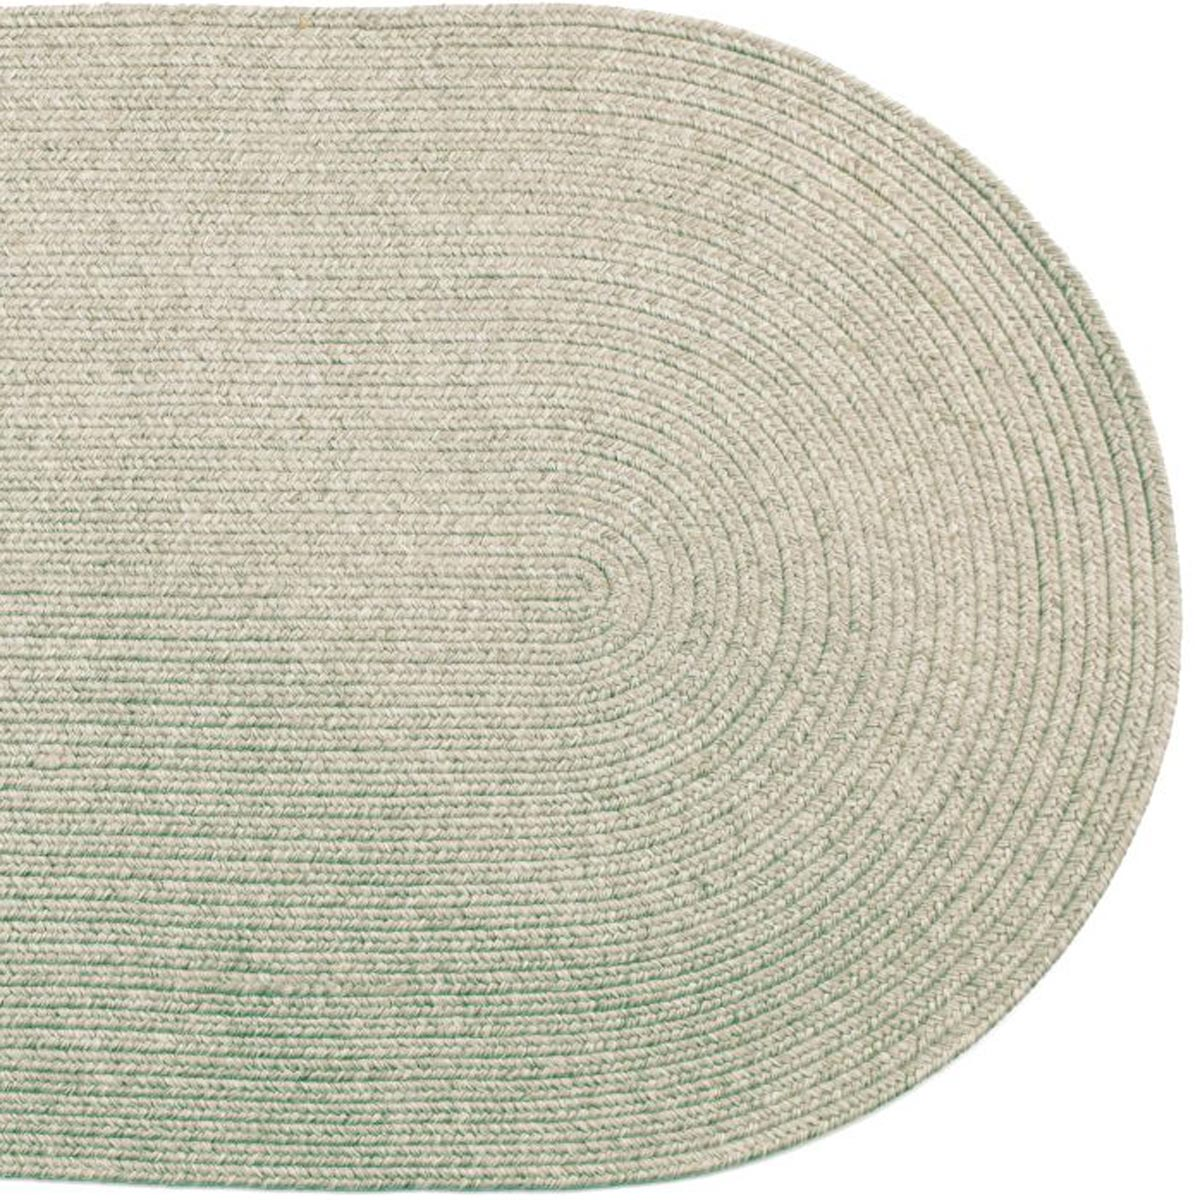 Solid Braided Area Rugs Indoor Outdoor Oval Rectangle : eBay